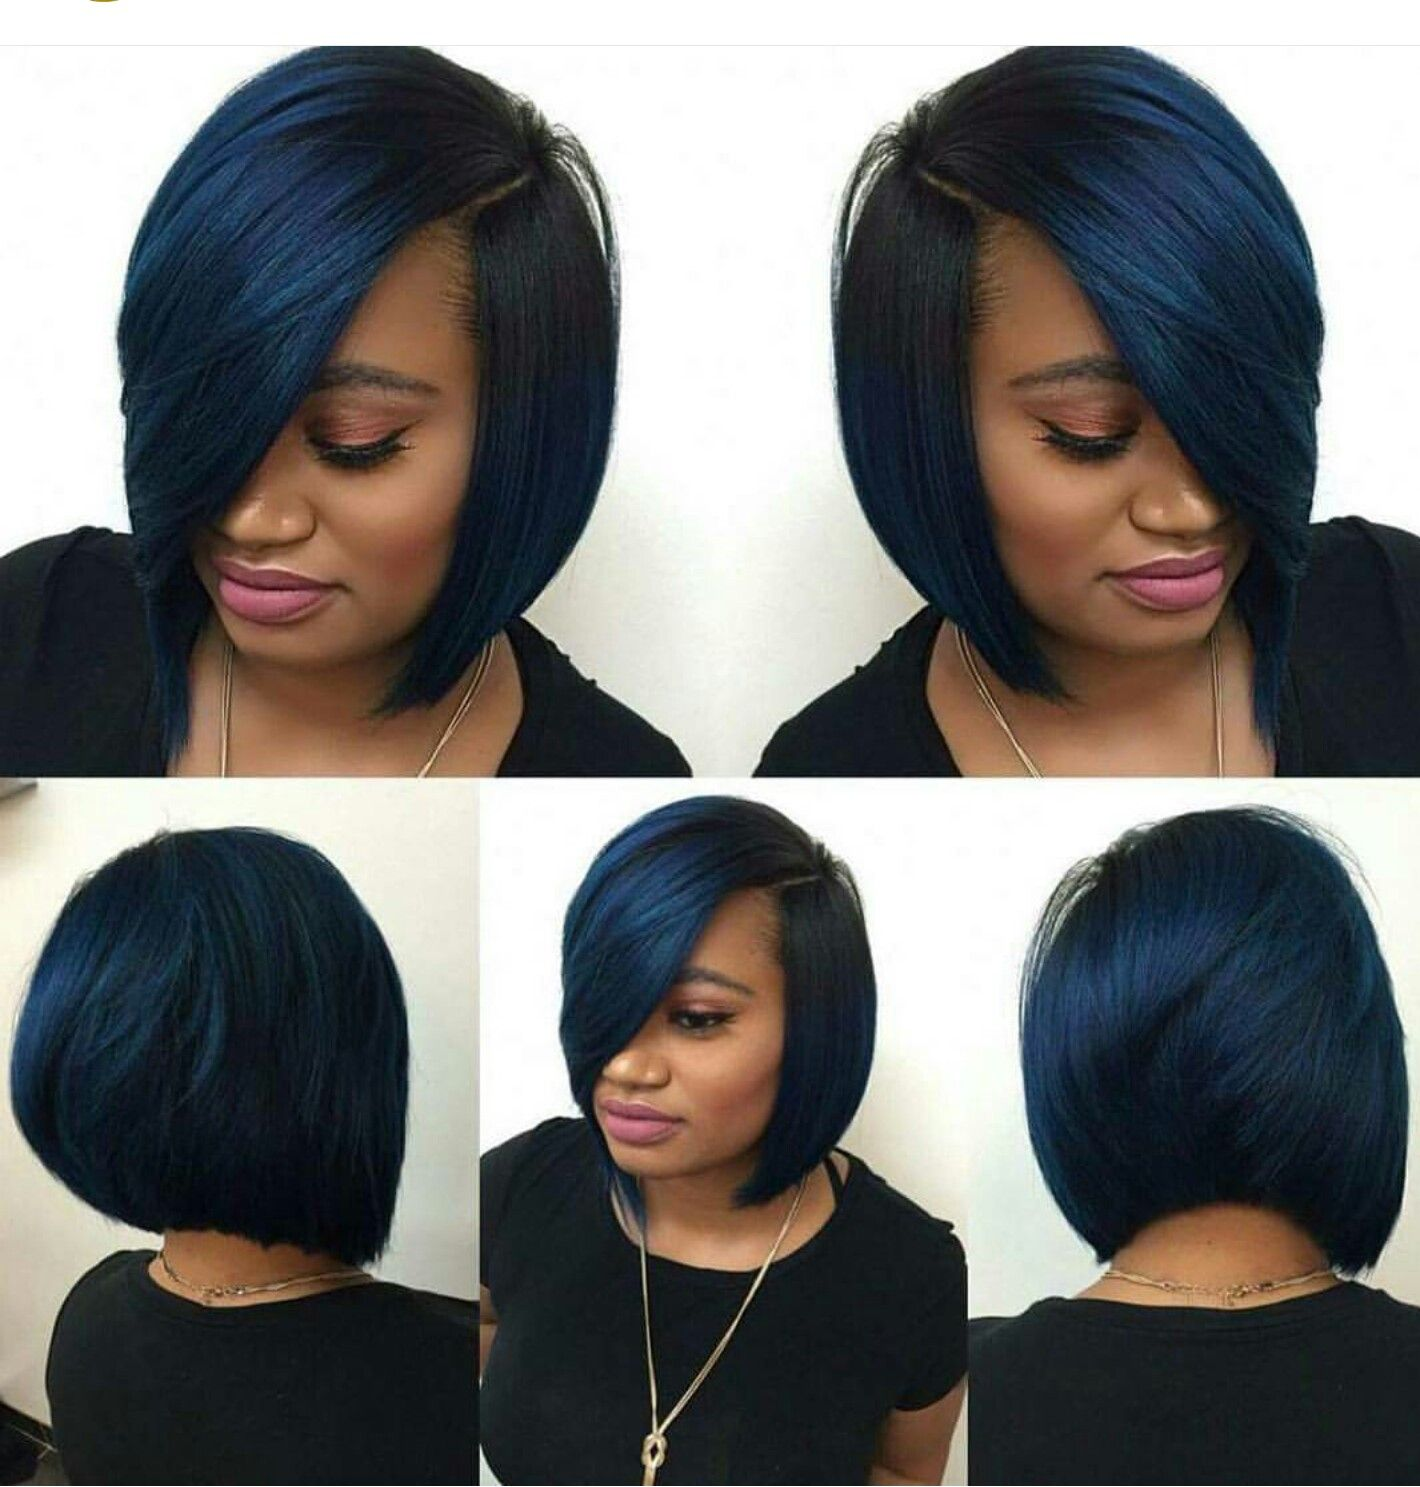 Pin by Londa B on Bobs | Hair inspiration, Natural hair styles, Sew in  hairstyles